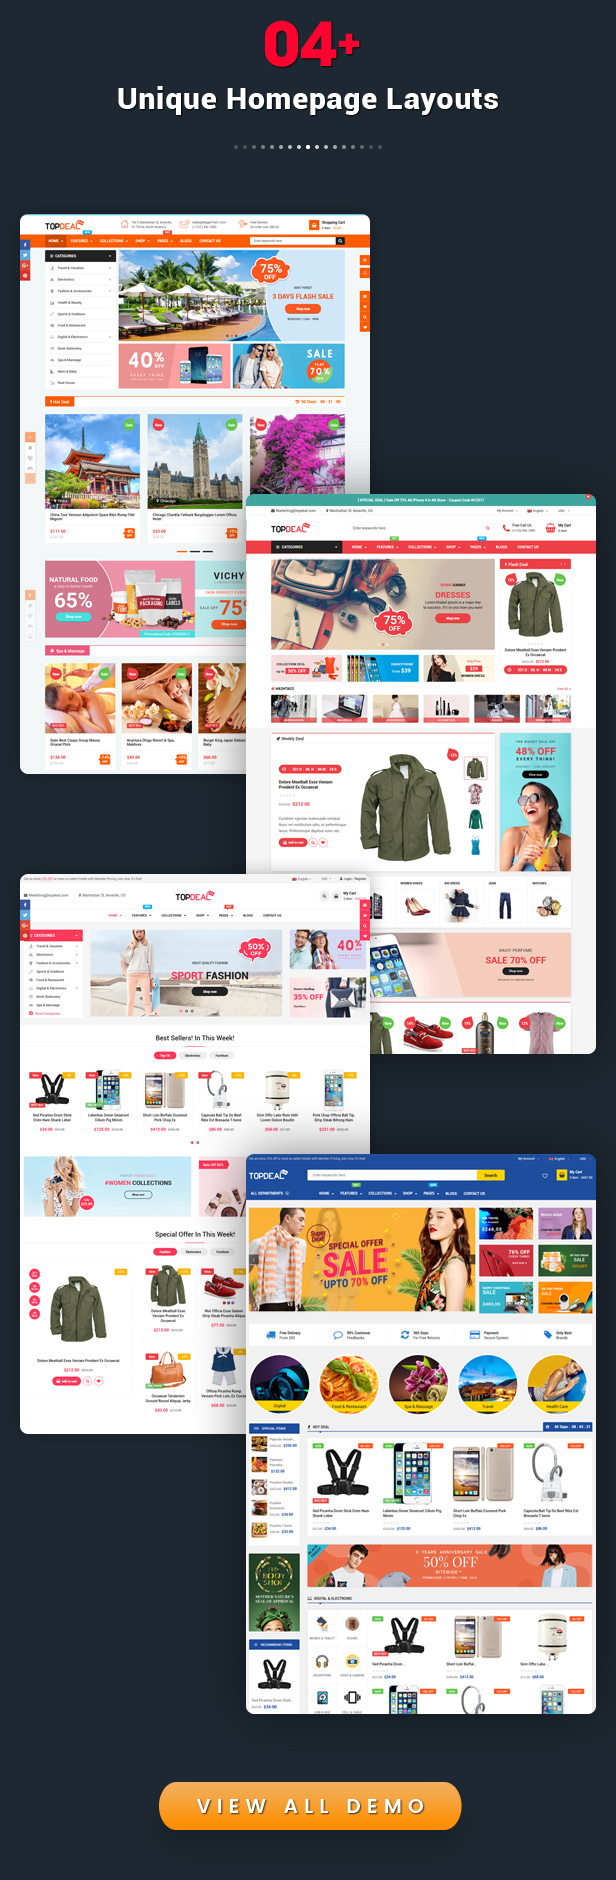 TopDeal - Multipurpose Shopify Theme with Sectioned Drag & Drop Builder